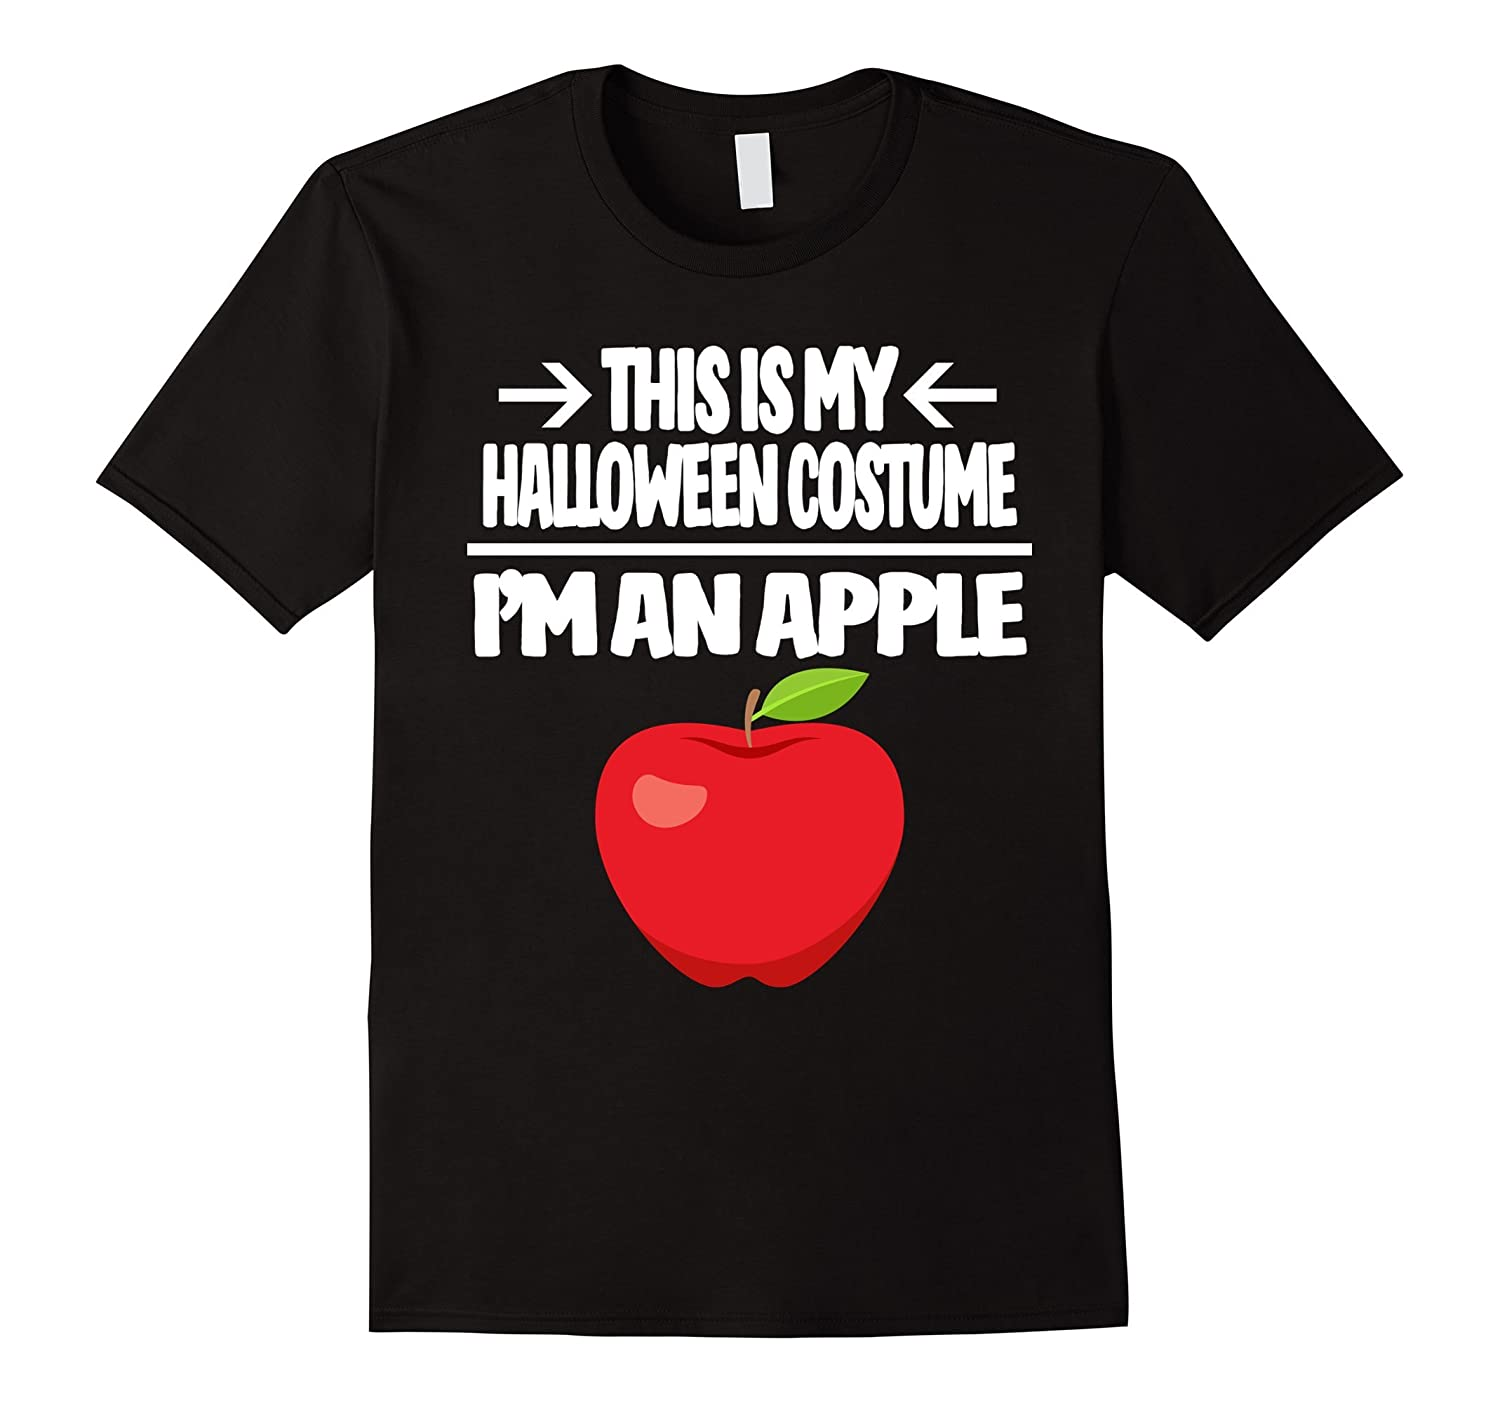 Apple Halloween Costume Tshirt - Men Women Youth Sizes